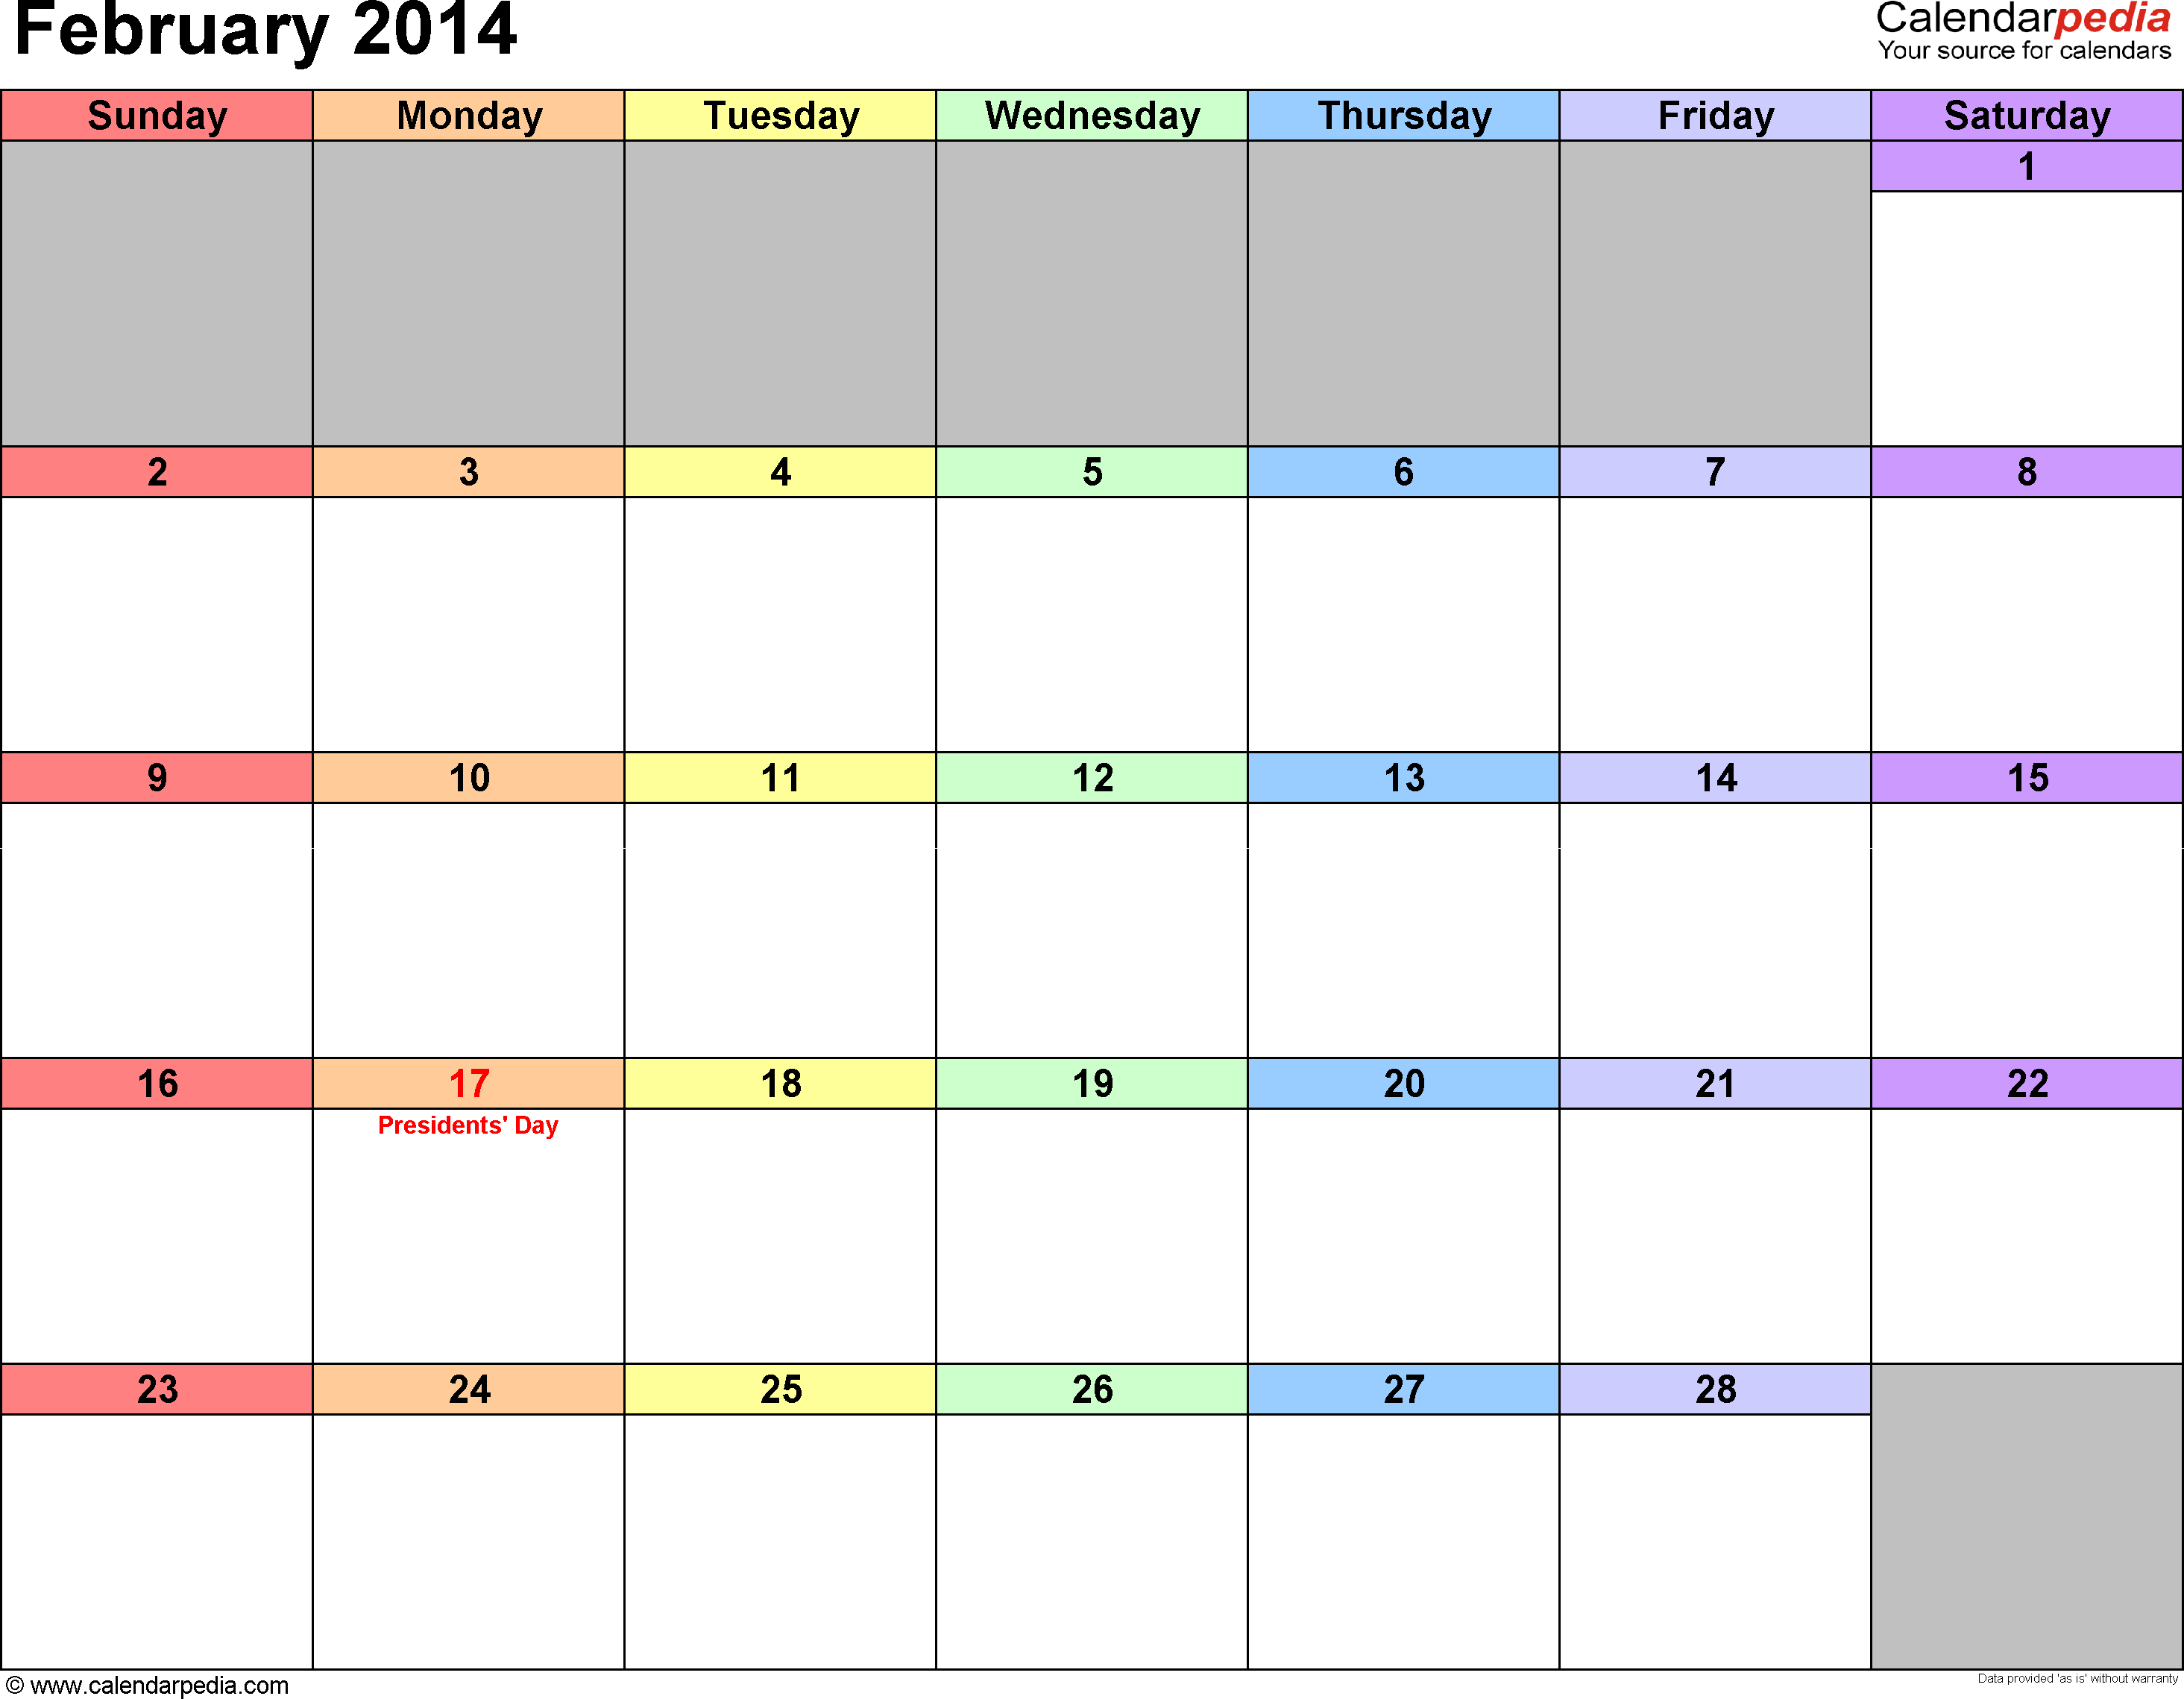 February 2014 Calendars for Word, Excel & PDF